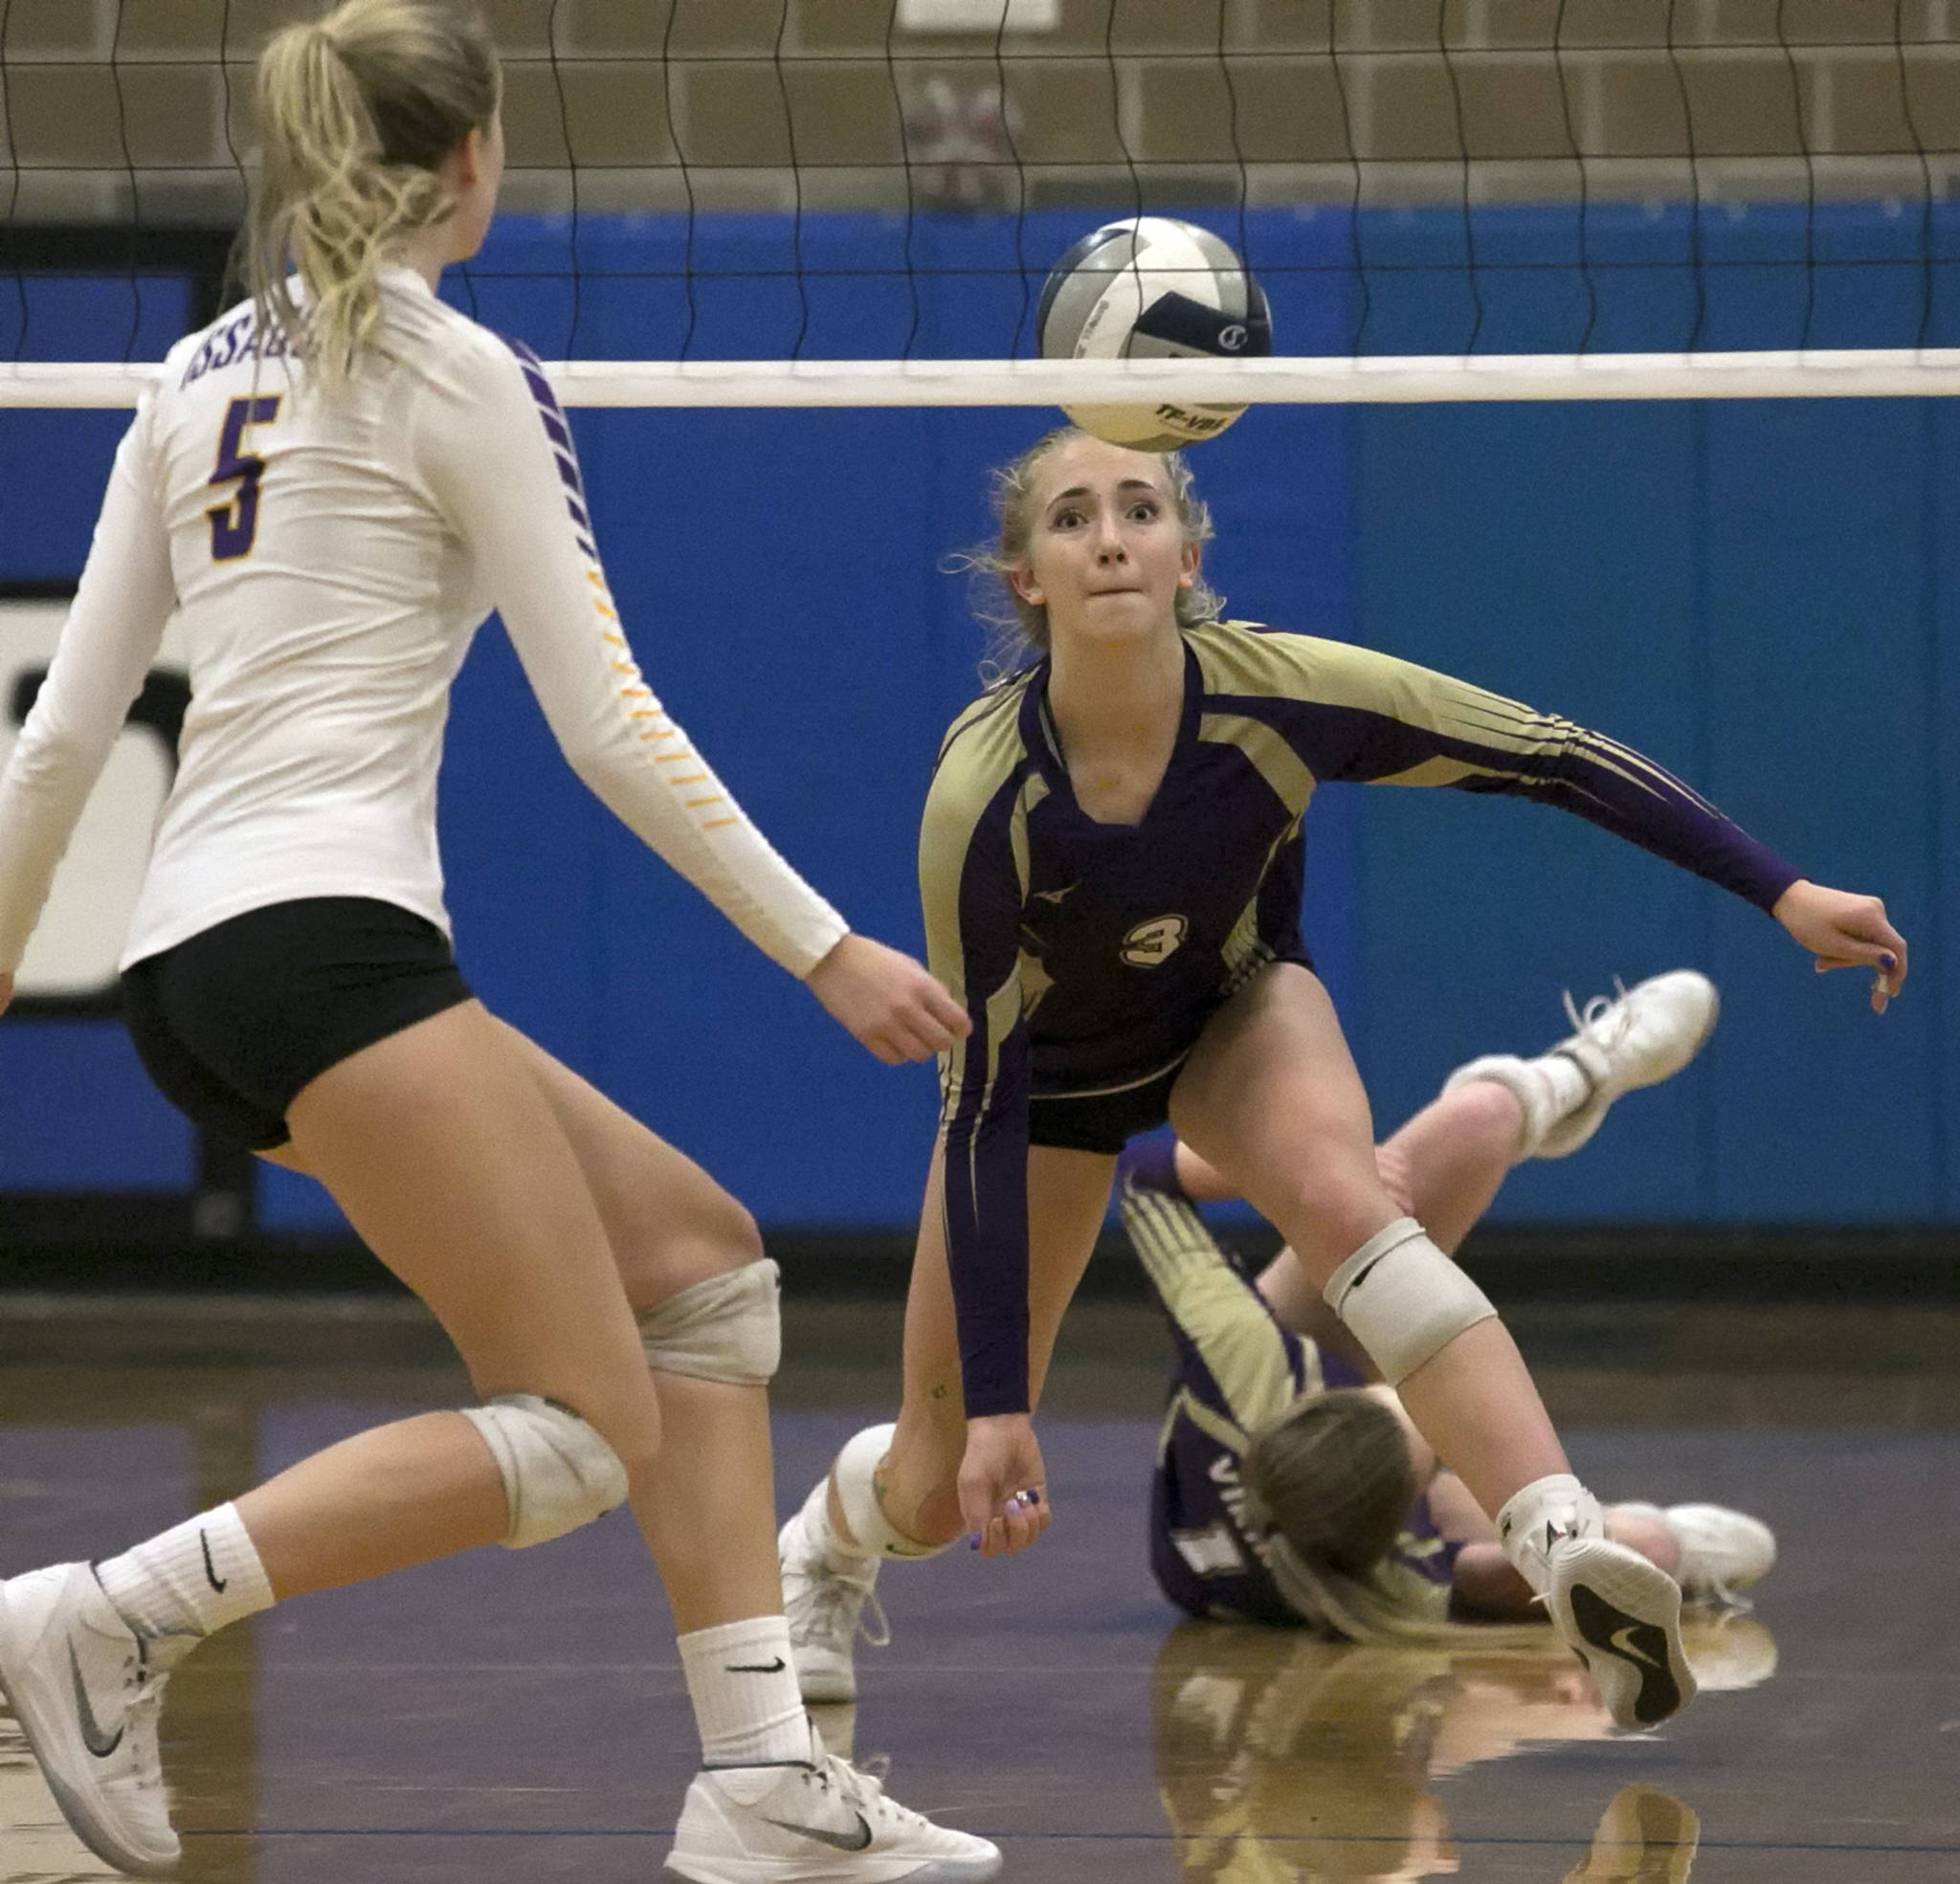 Lake Stevens' Samaya Morin attempts a dig with Issaquah's Zoe Hennings (left) looking on during the District Volleyball Tournament at Bothell High School on Nov. 6. Chargers won 25-17. (Kevin Clark / The Herald)